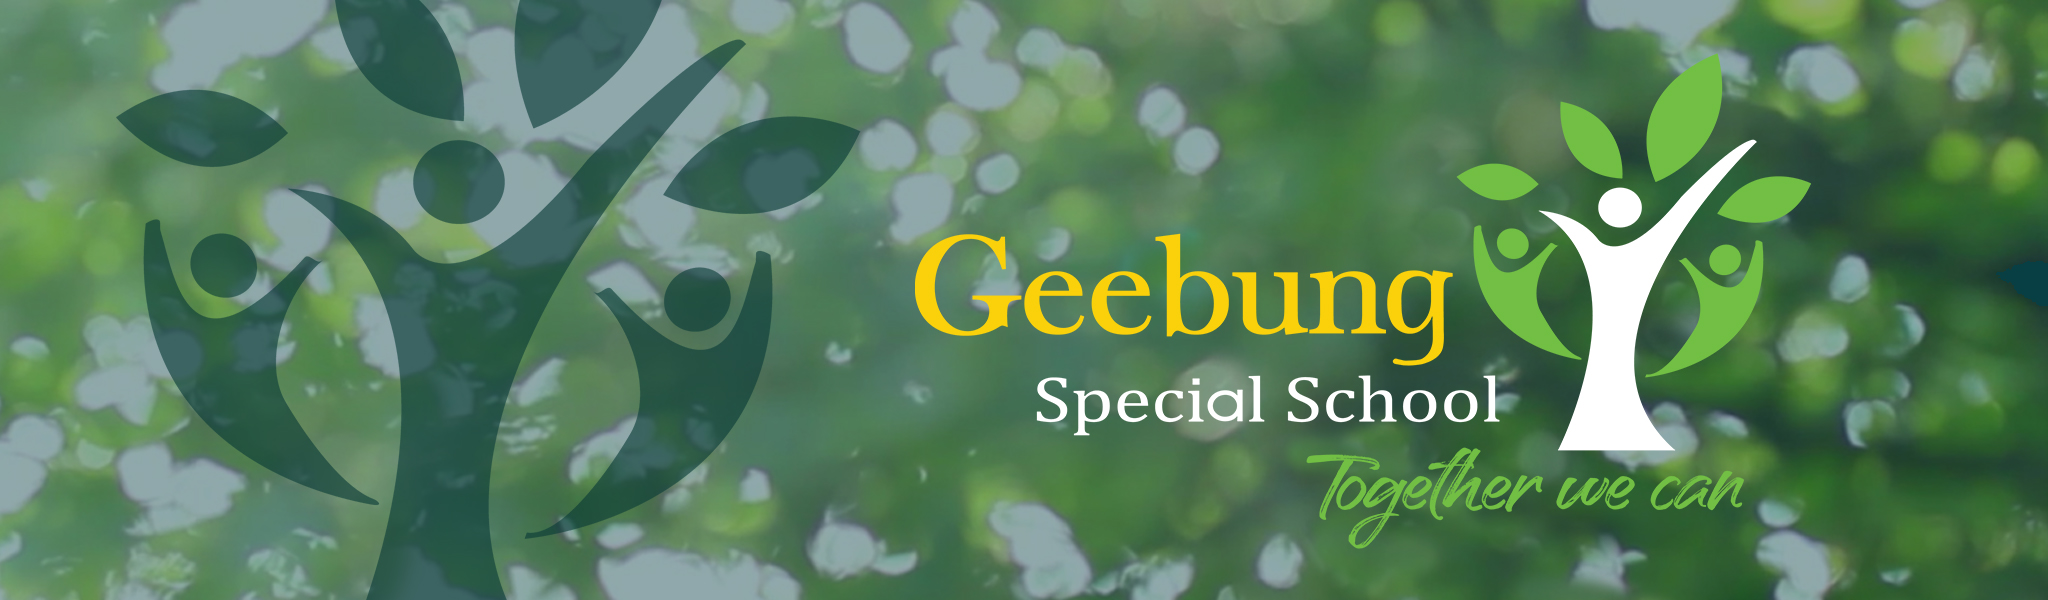 Geebung Special School - Together we can